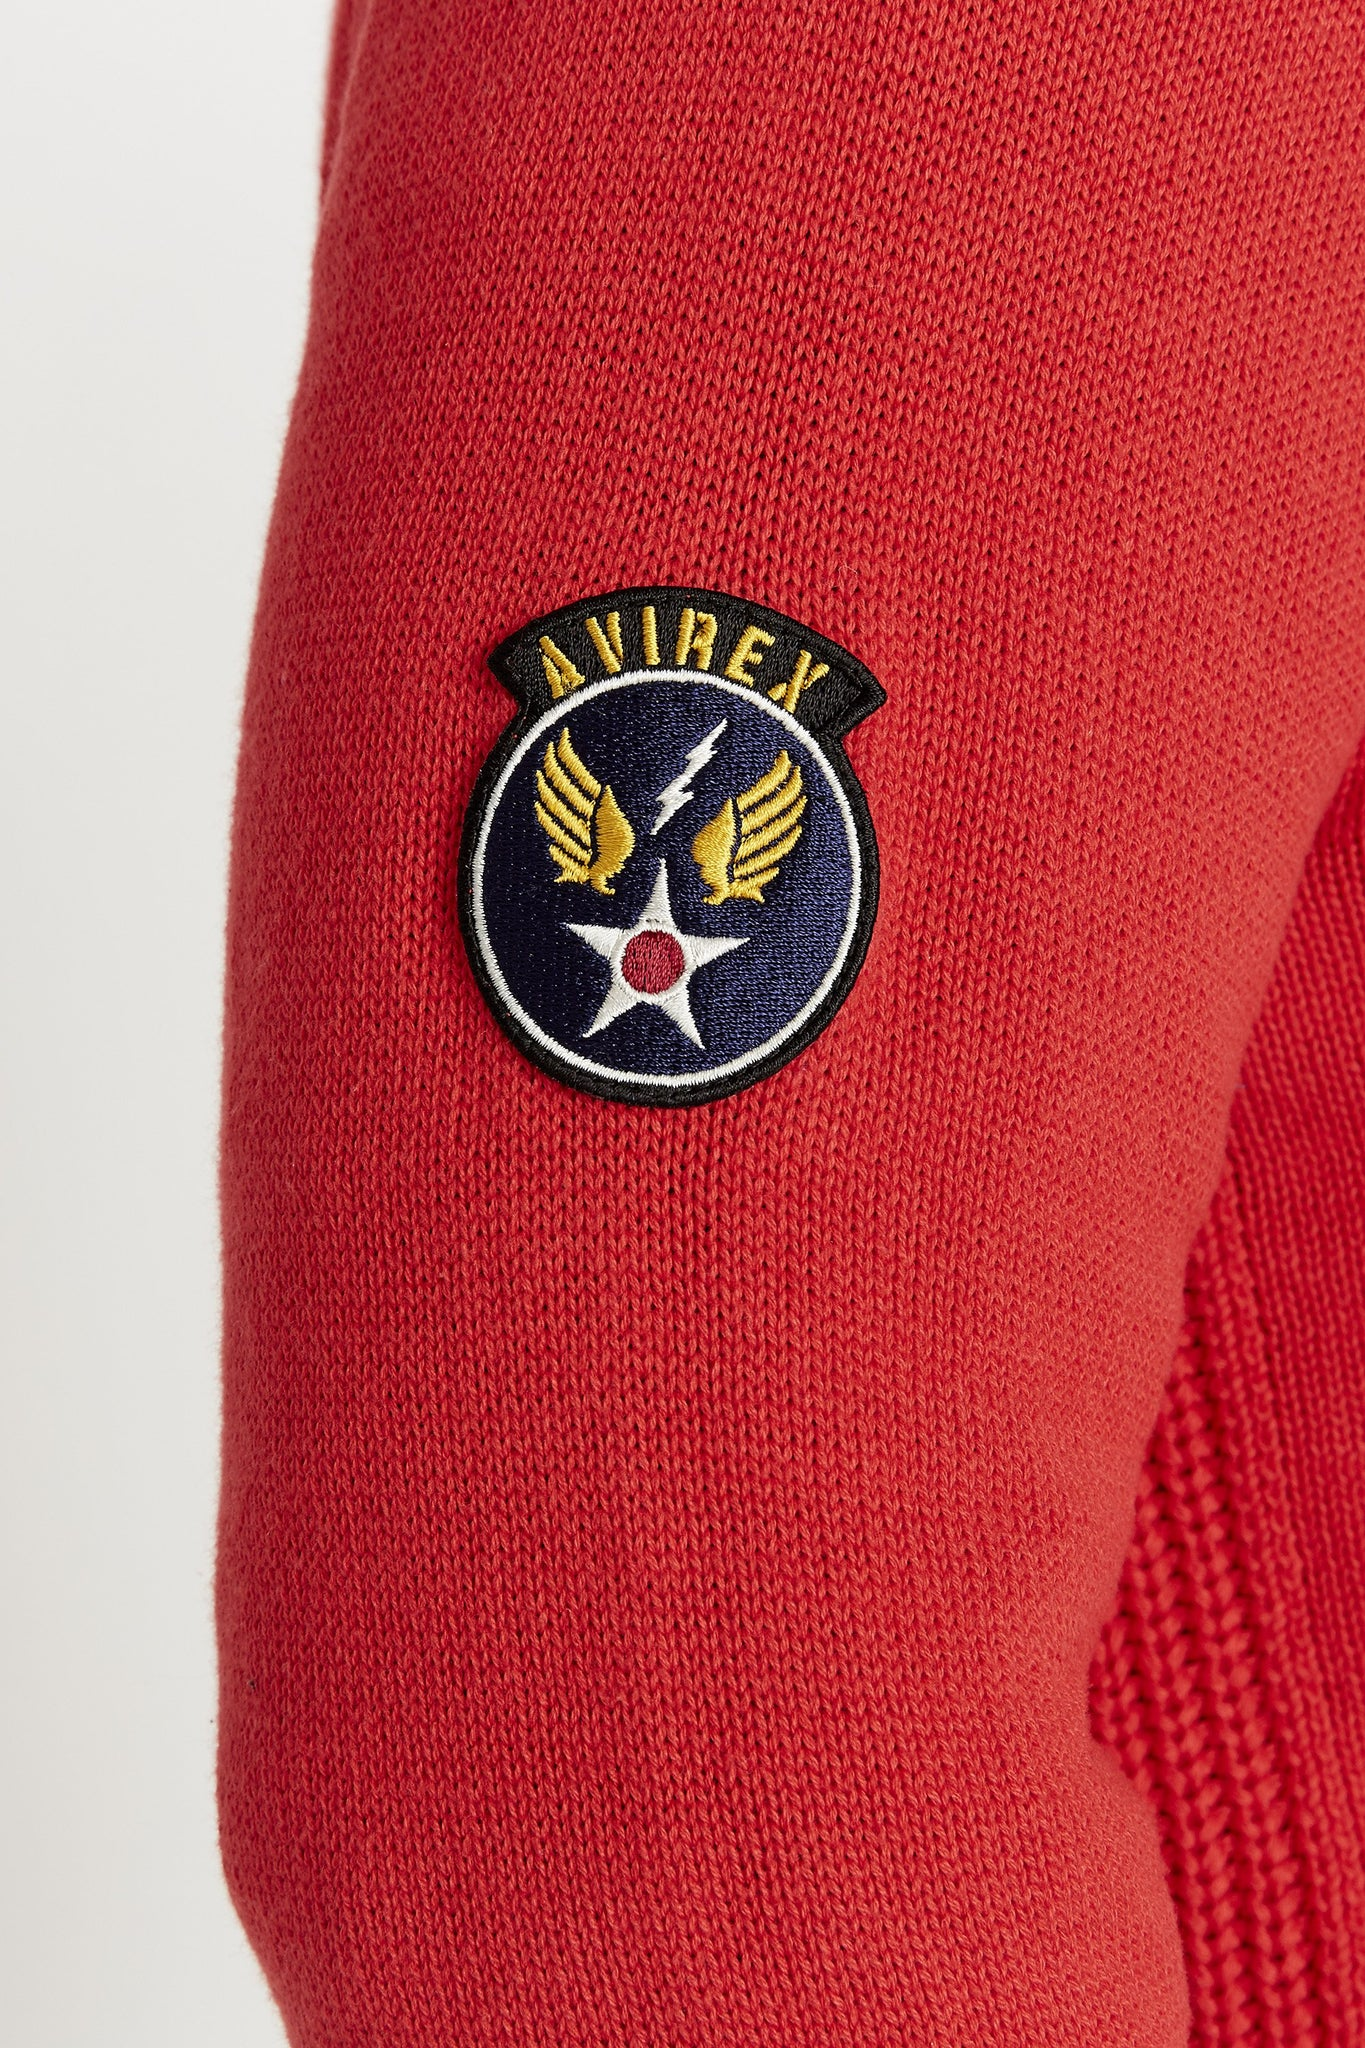 Detailed view of a patch on the right sleeve